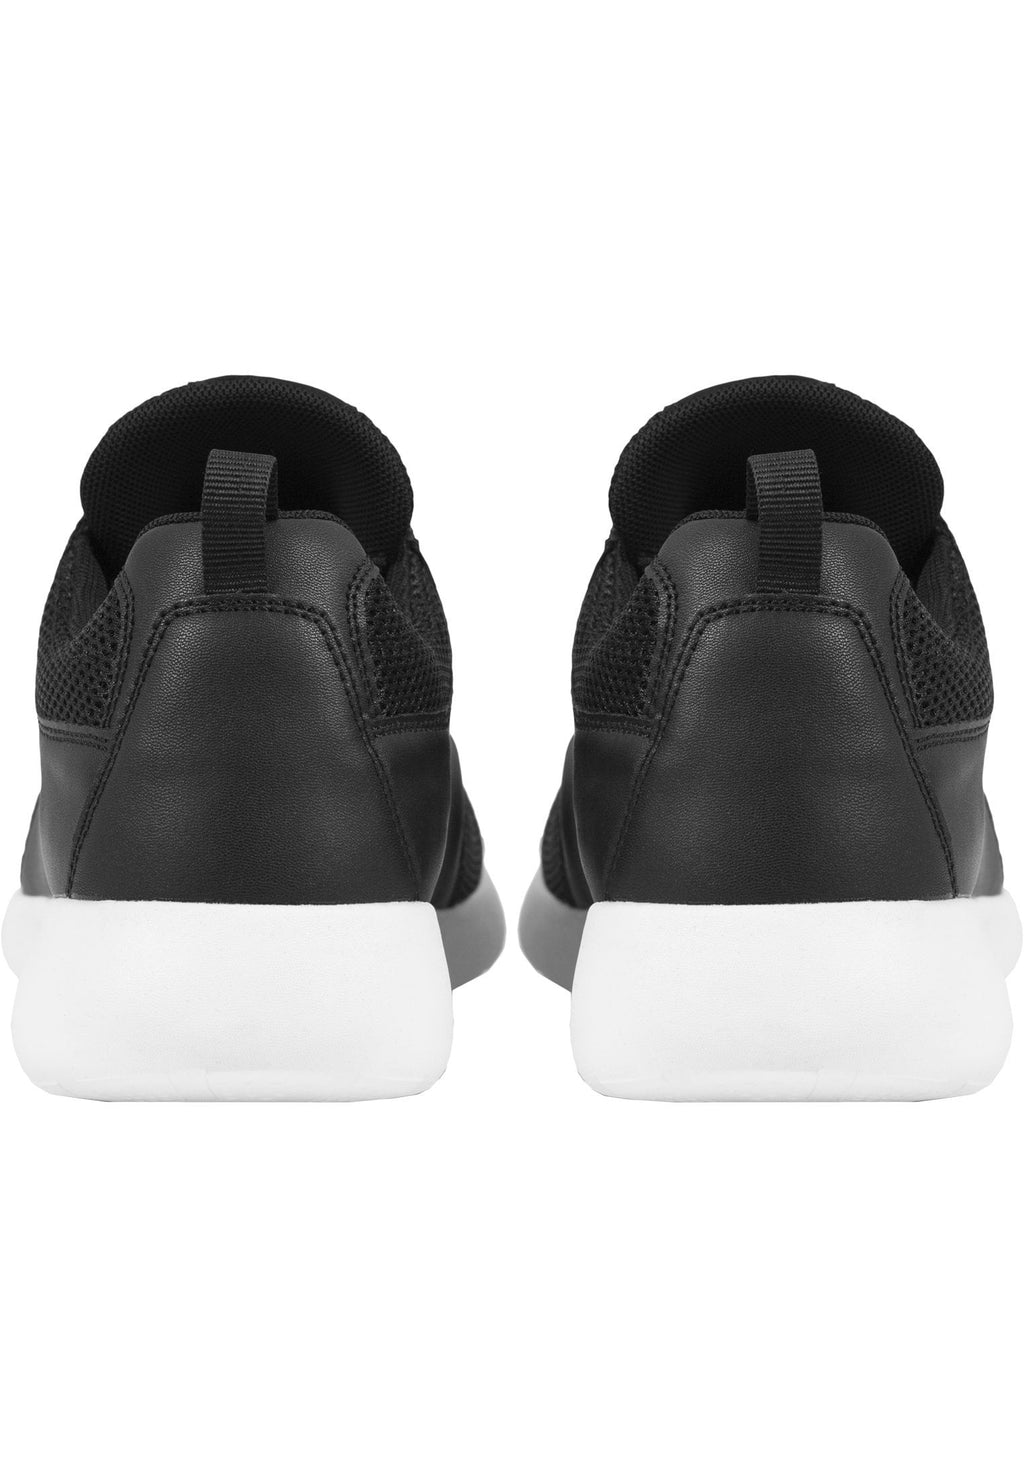 Light Runner Shoe - Black n White